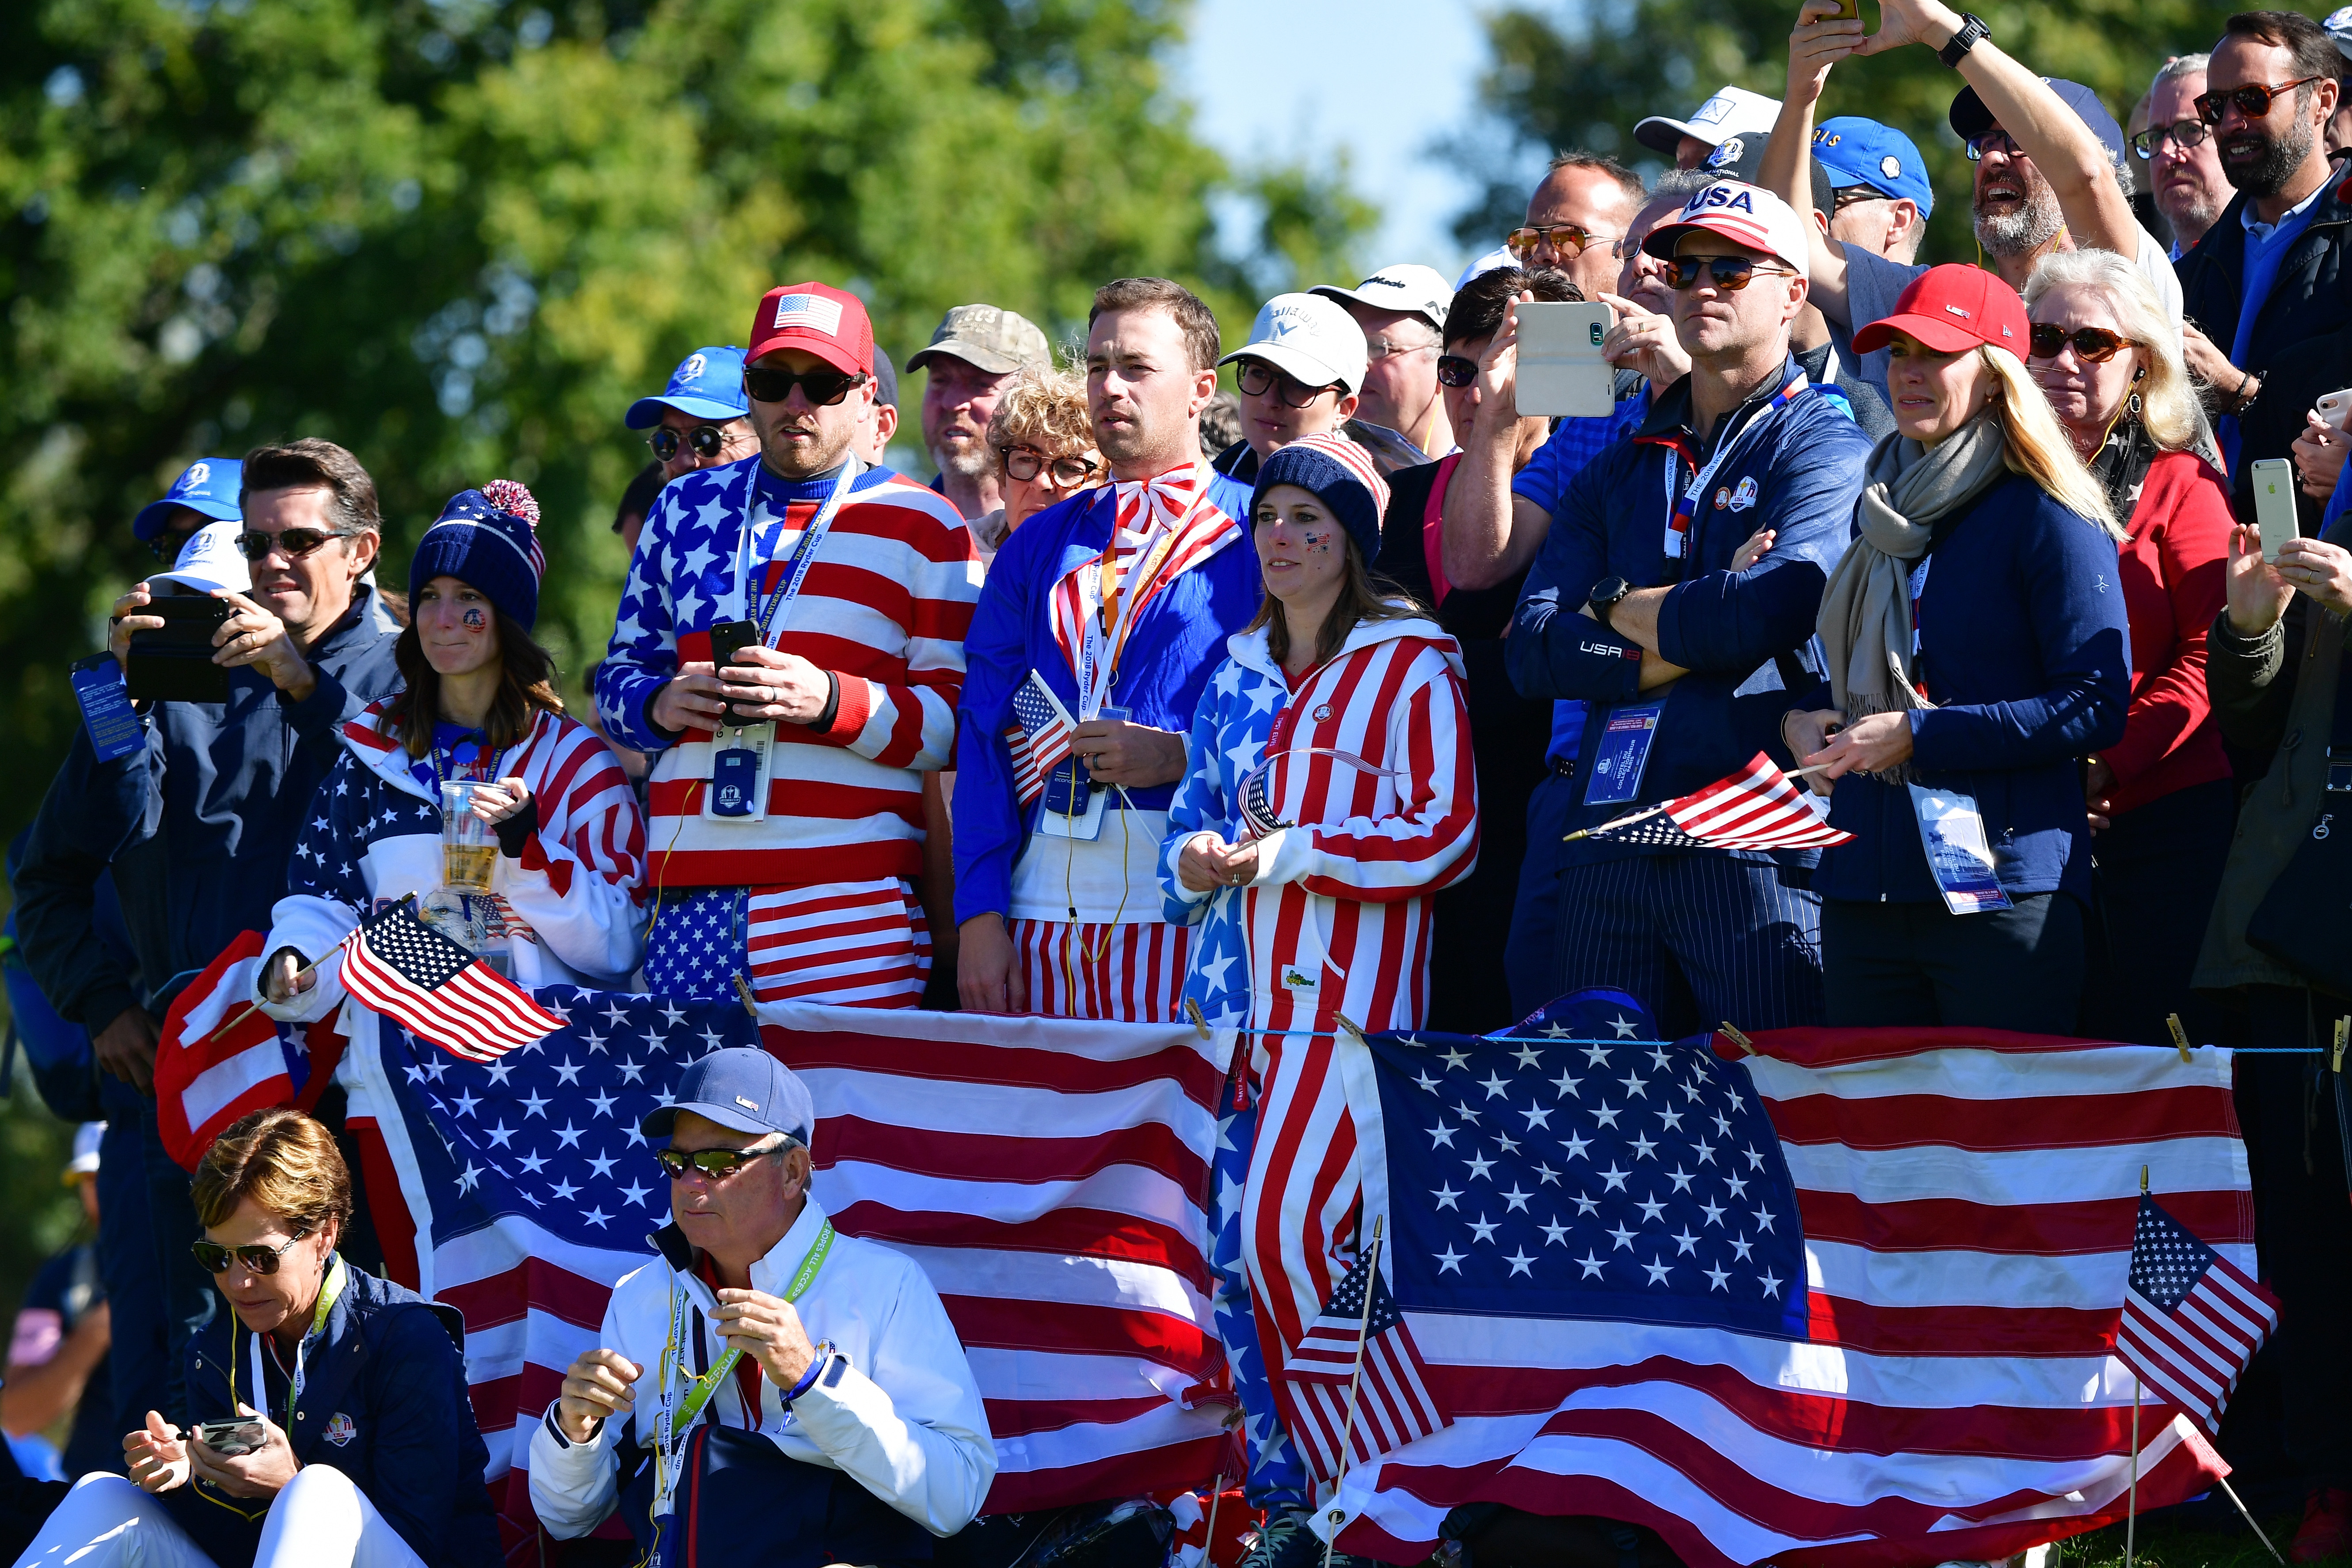 PARIS, FRANCE - SEPTEMBER 30: USA fans watch on during singles matches of the 2018 Ryder Cup at Le Golf National on September 30, 2018 in Paris, France. (Photo by Stuart Franklin/Getty Images)